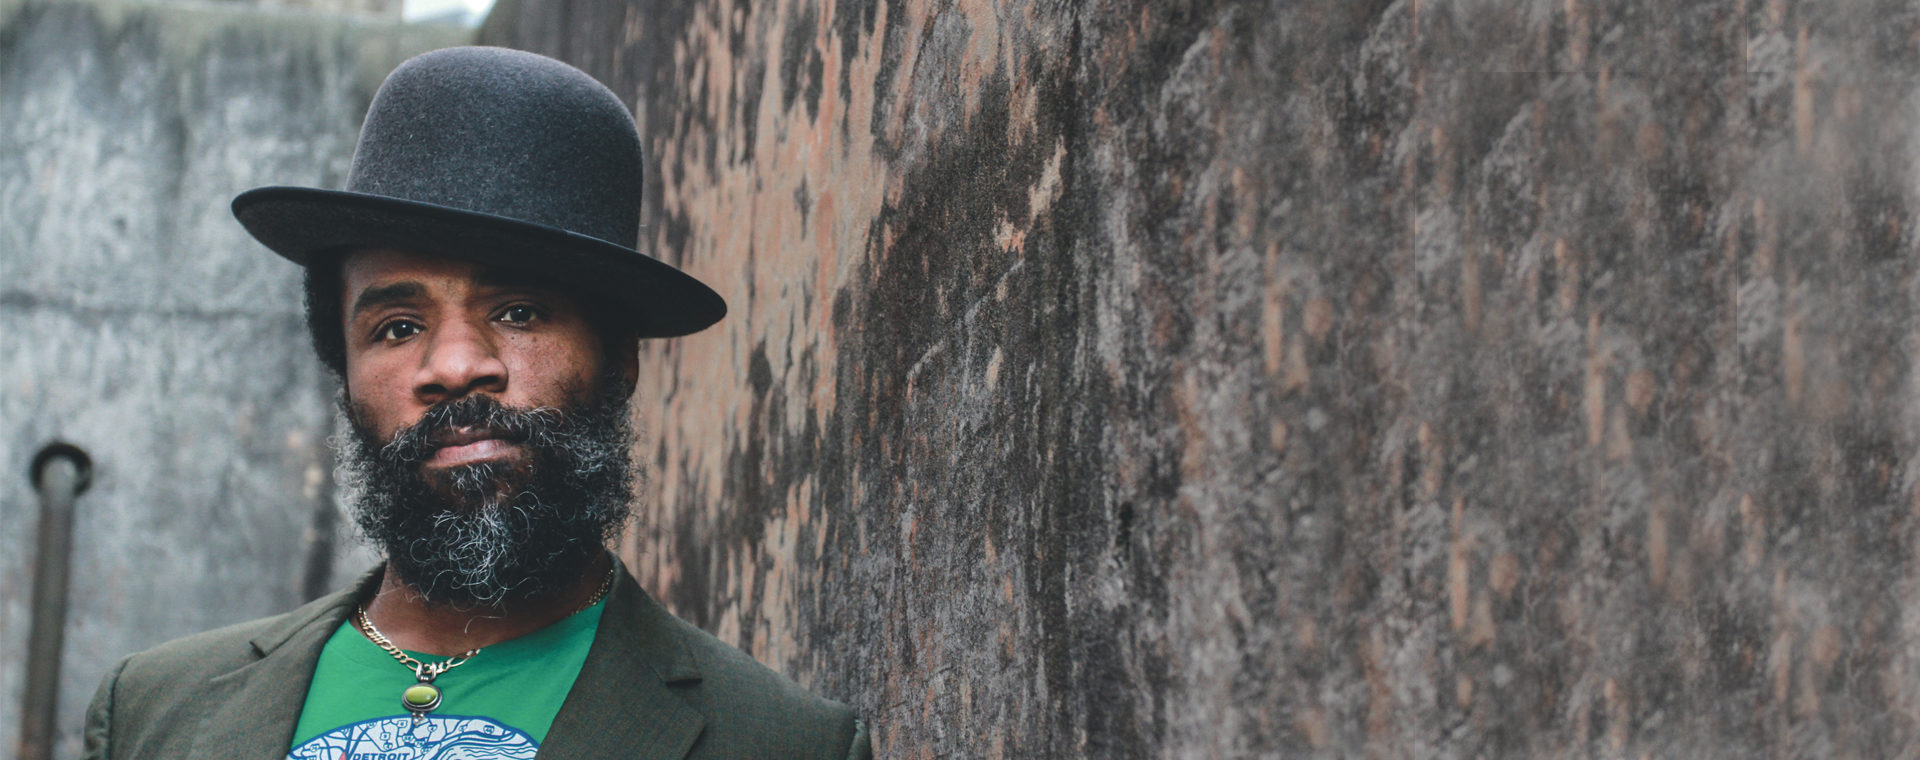 LATEST ISSUE <br><b>Cody Chesnutt</b></br>